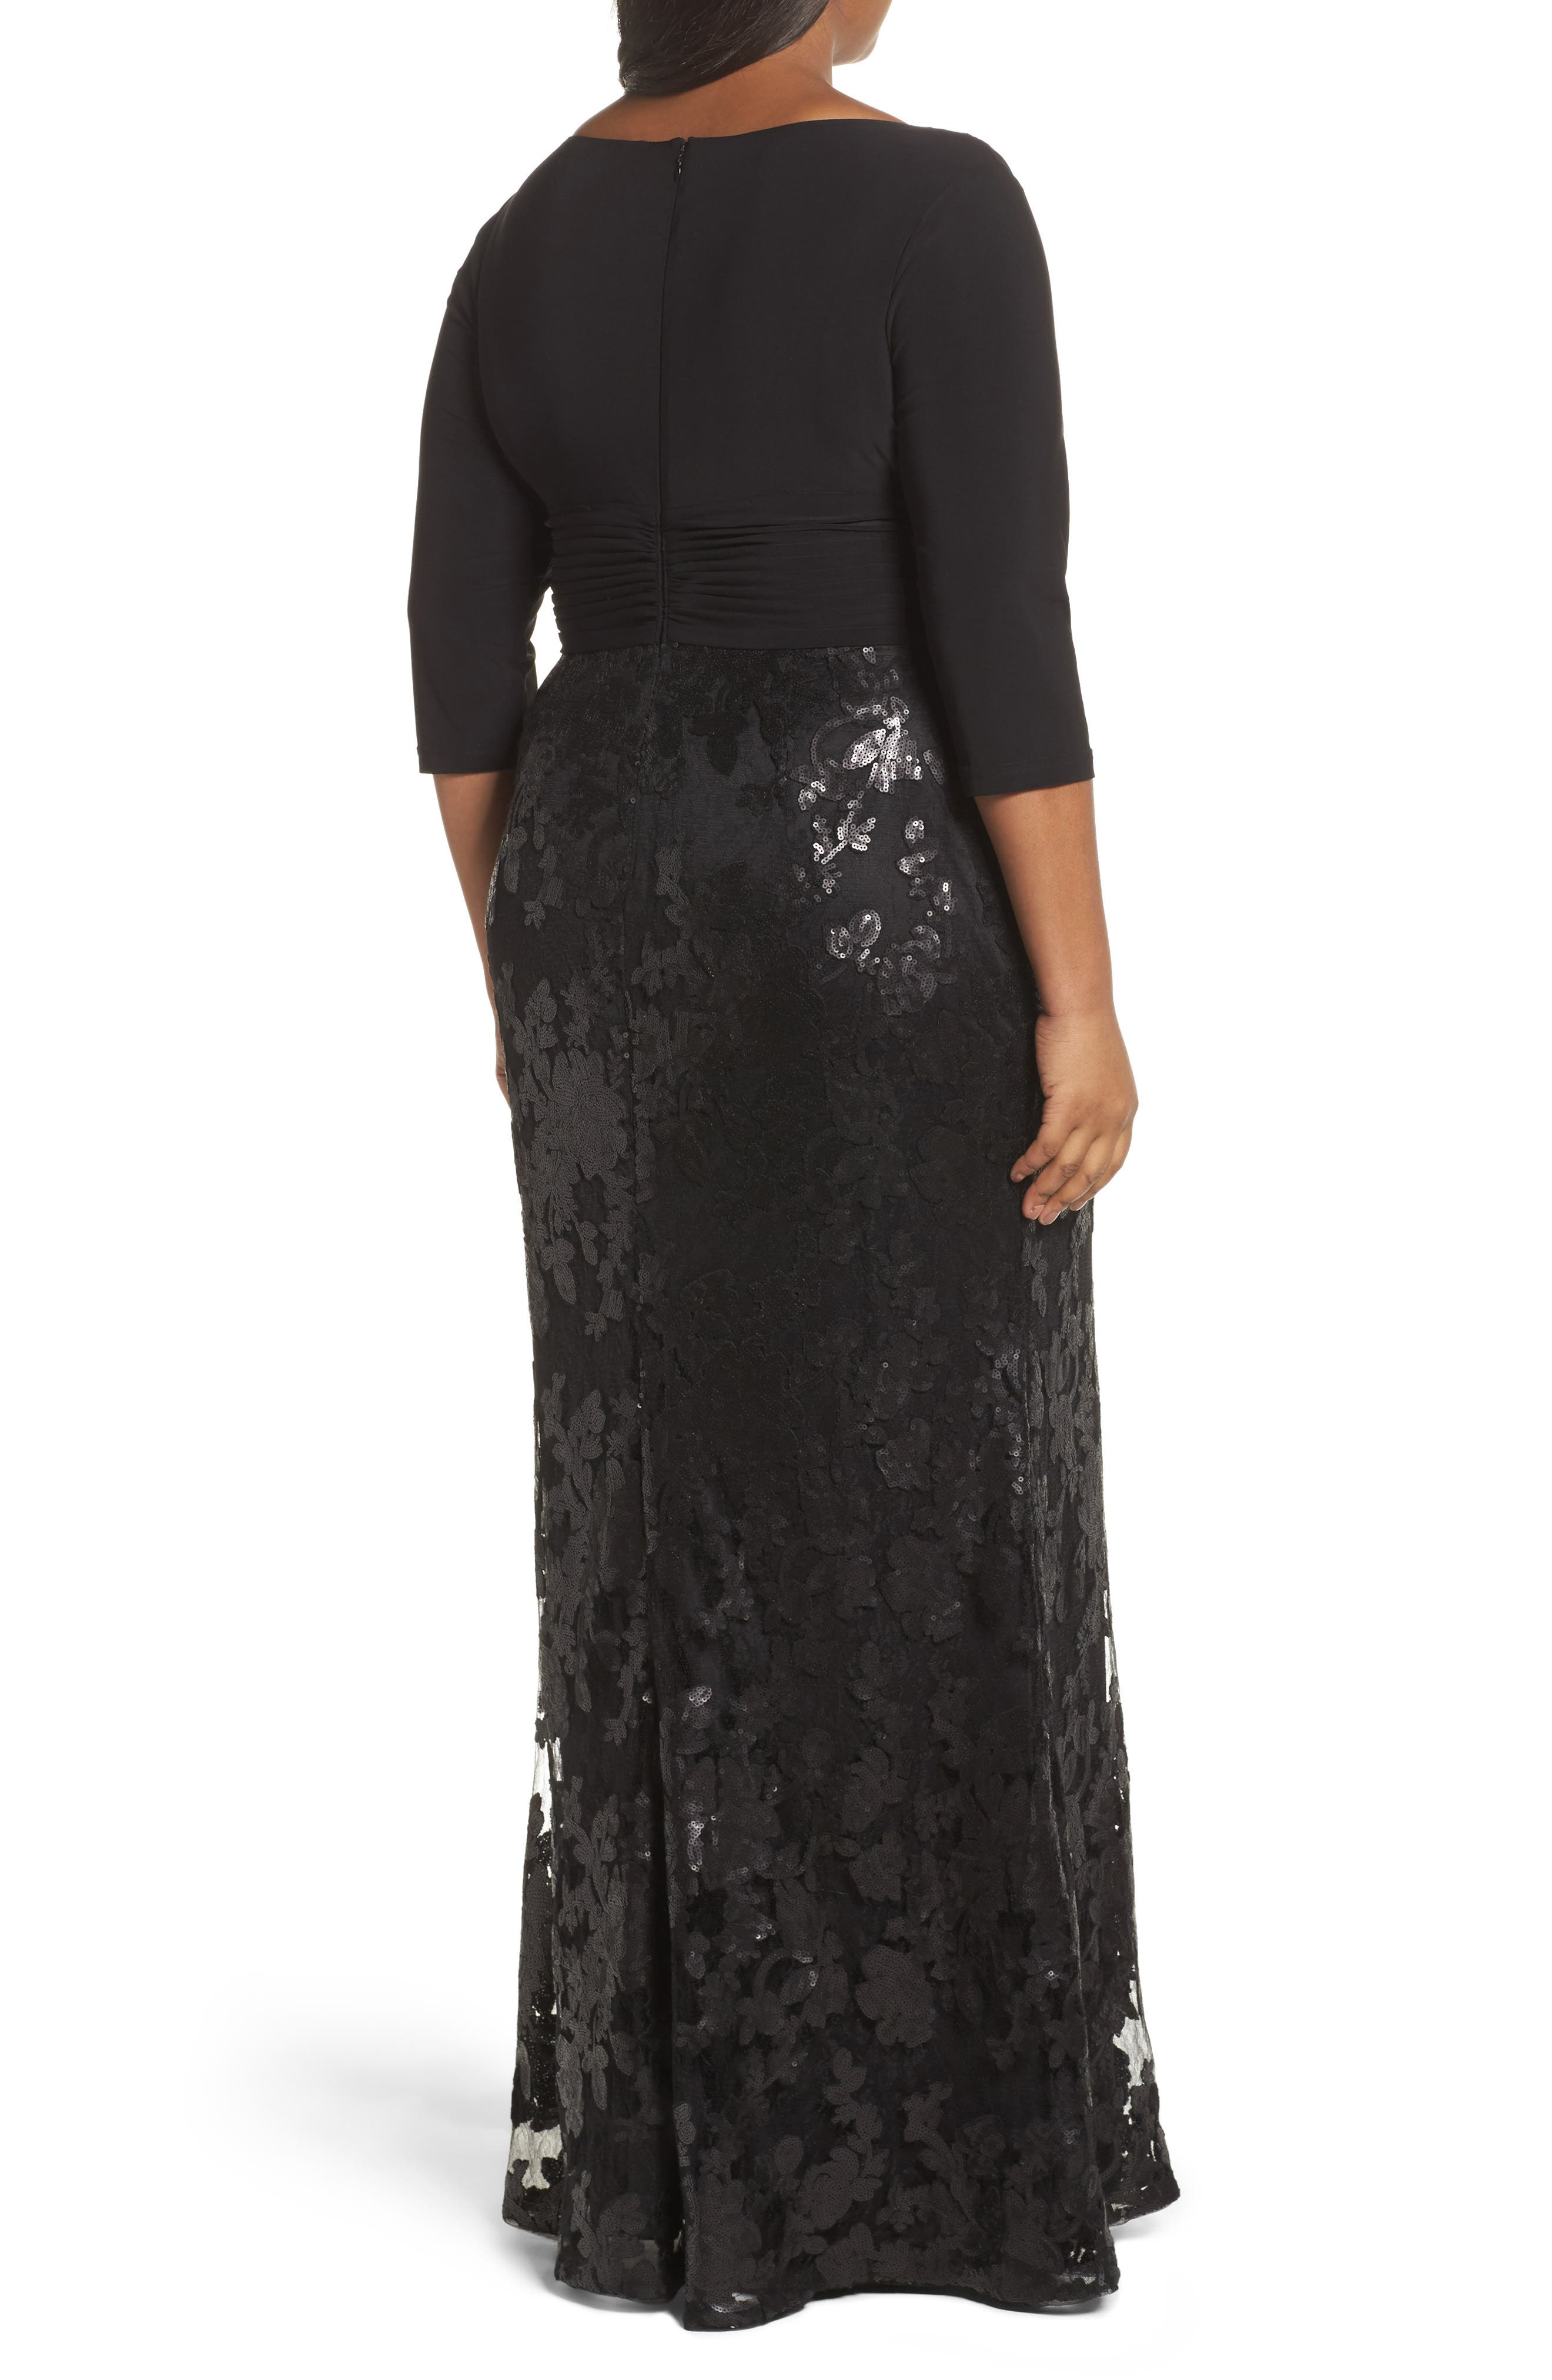 ADRIANNA PAPELL,                             Jersey & Sequin Lace Gown,                             Alternate thumbnail 2, color,                             002